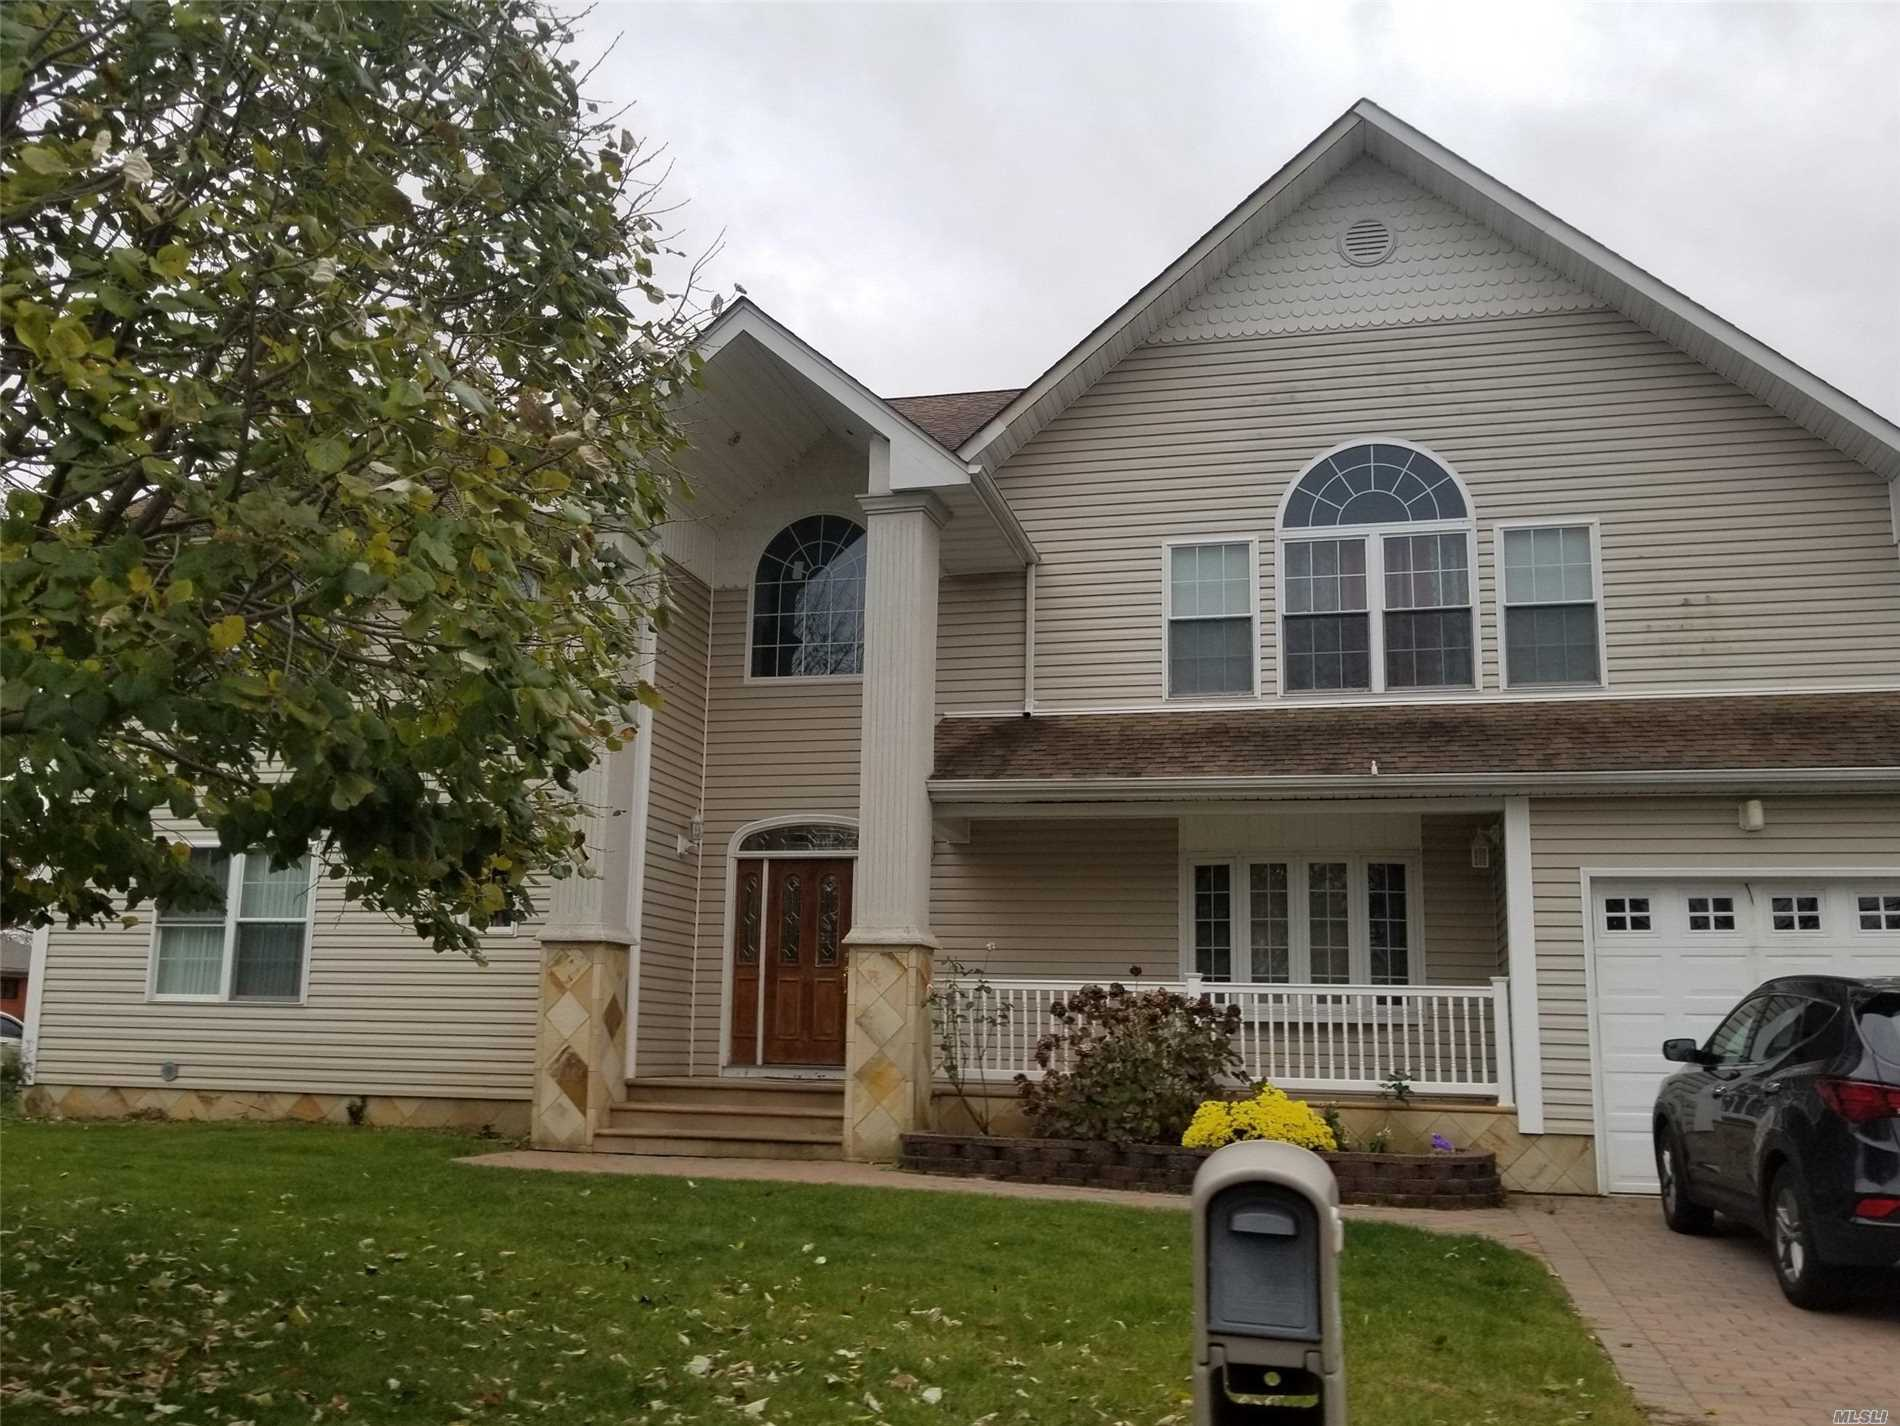 Large Colonial With 12 Rooms 6 Beds And 4 Bath. Anityville Schools. Close To Shopping, Transportation And Major Roadways